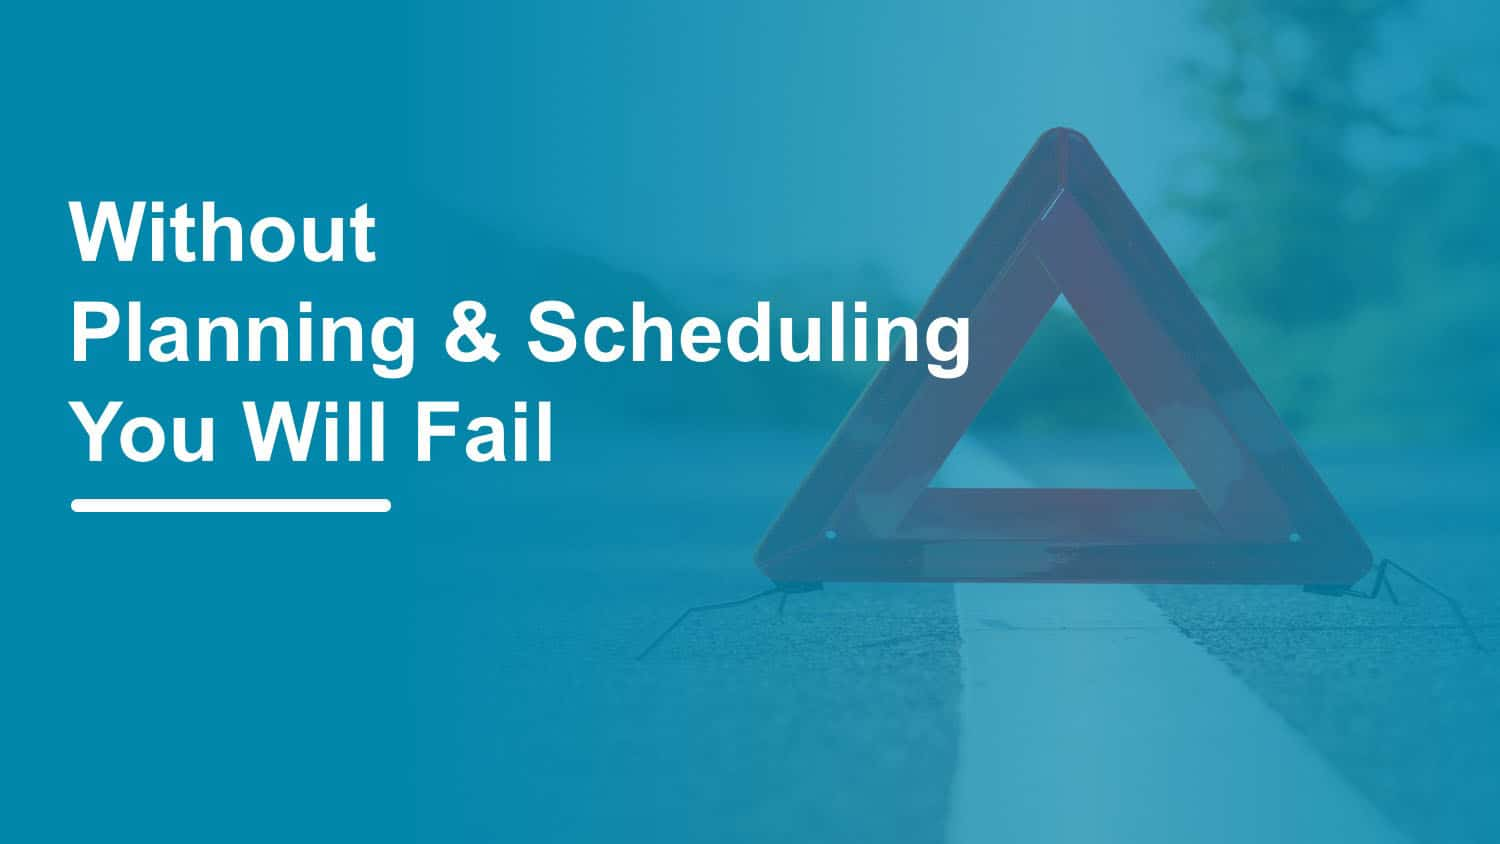 Without Planning and Scheduling You Will Fail